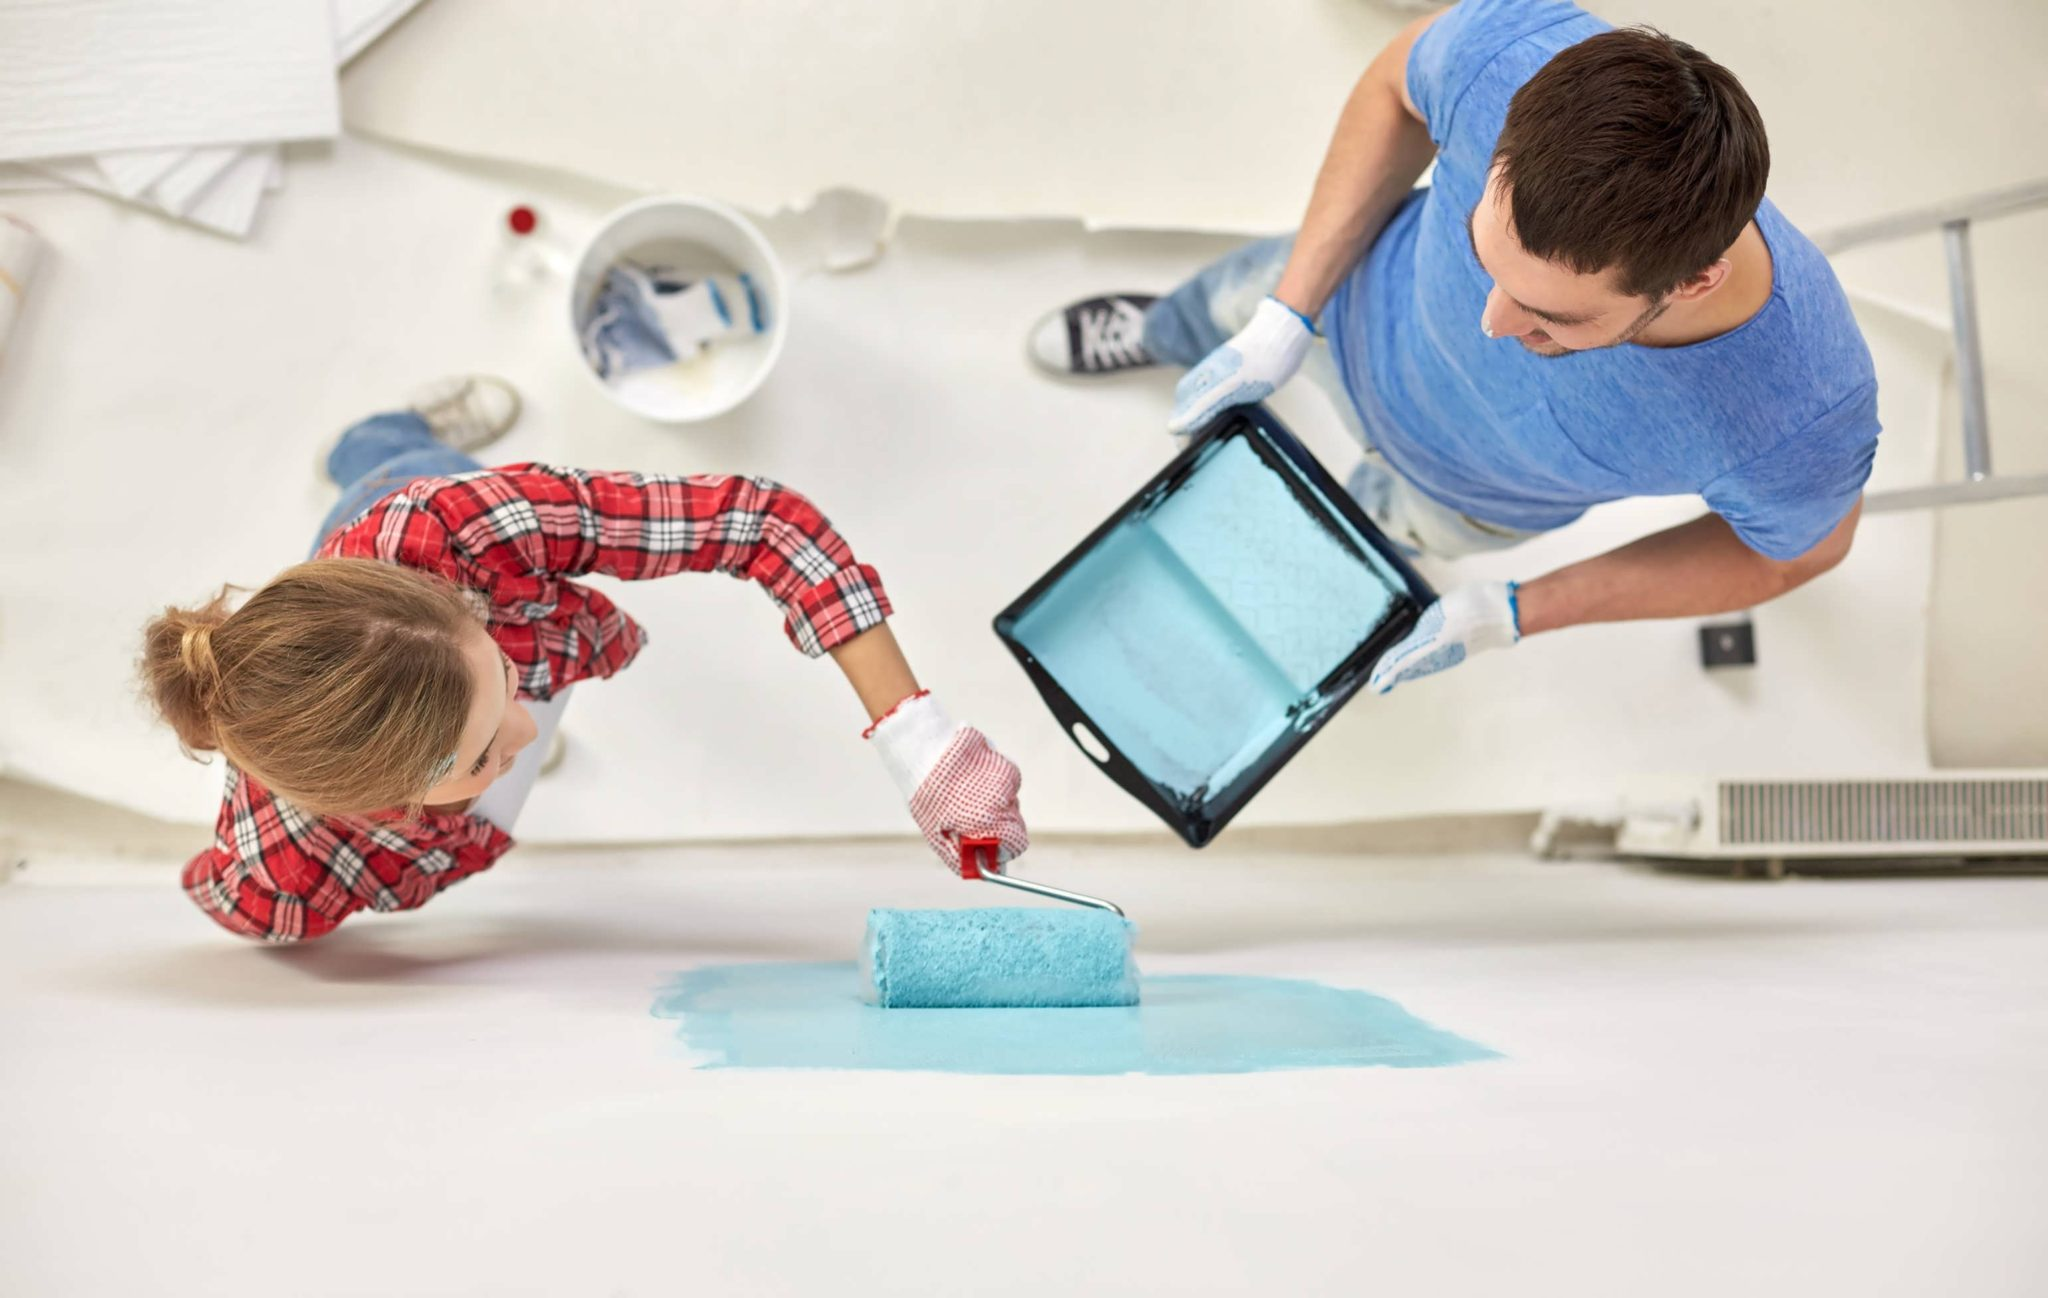 Carefully claim deductions when renovating